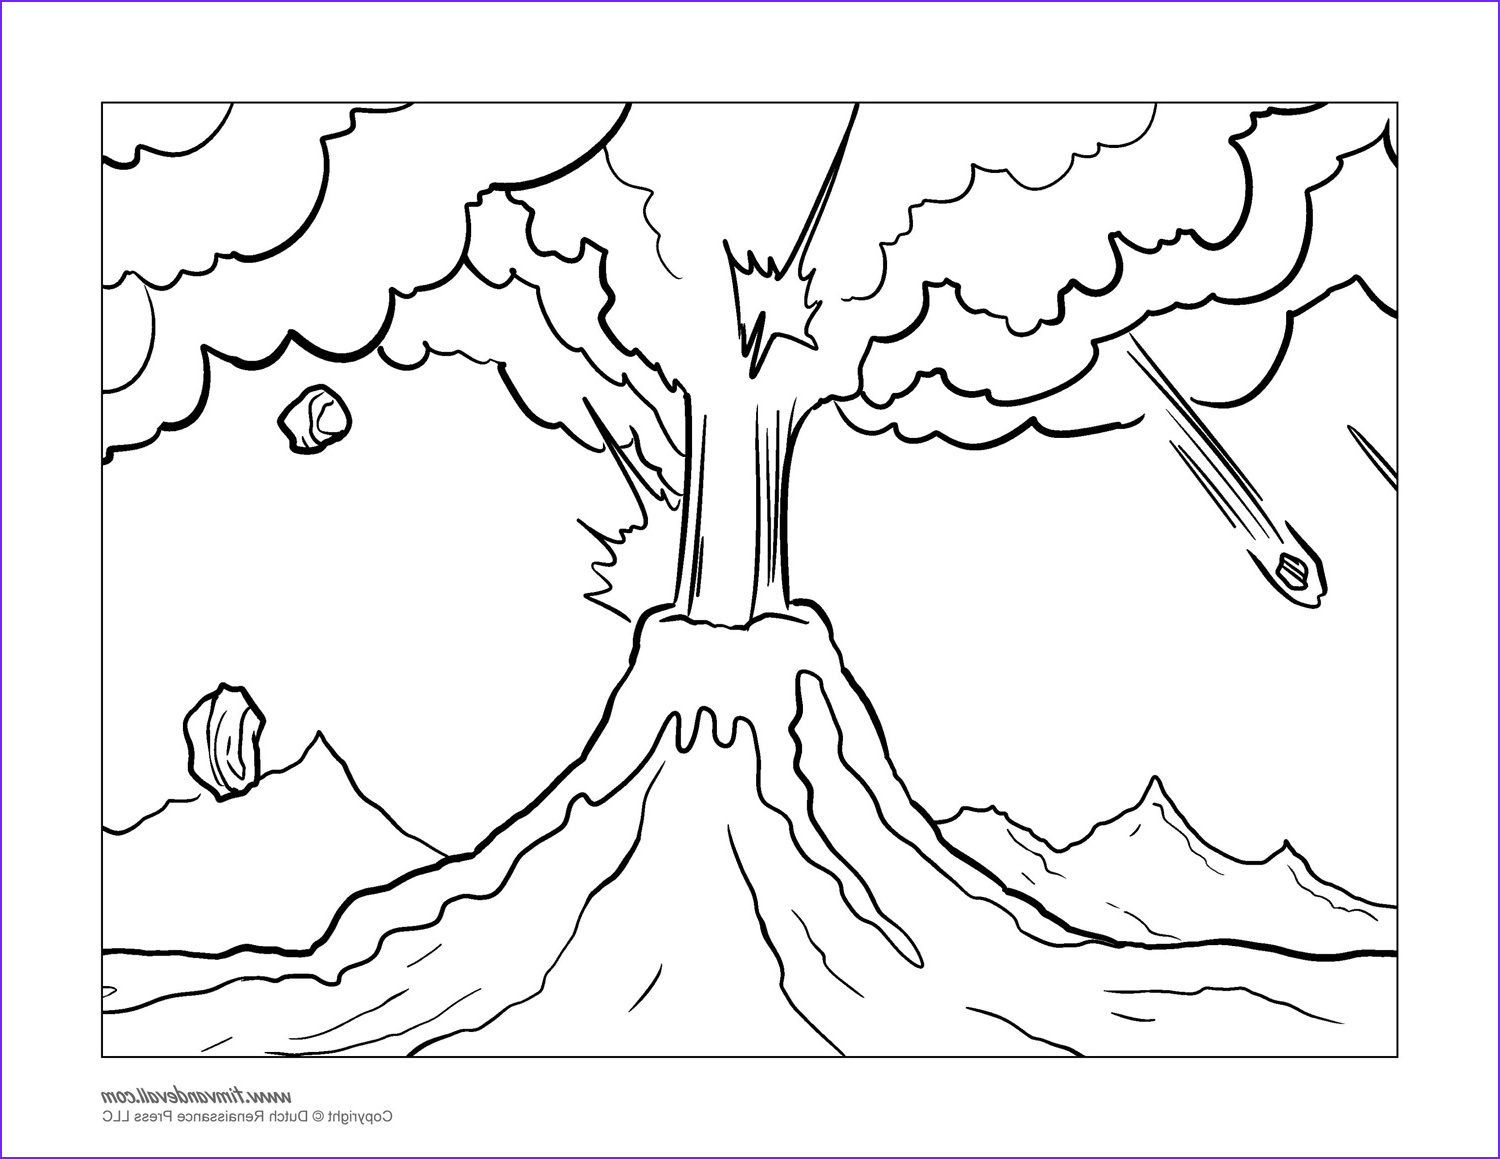 Coloring Page Volcano Best Of Collection Volcano Coloring Pages